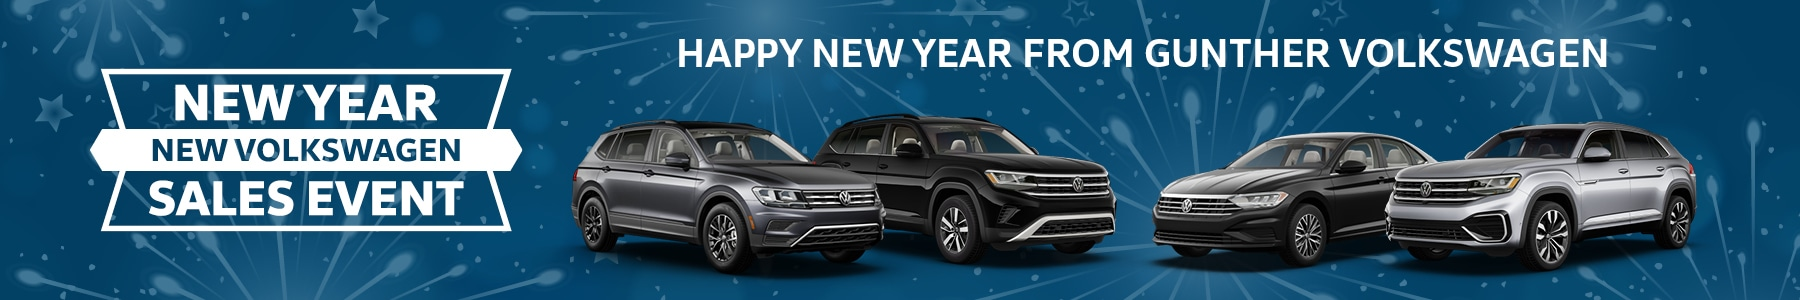 New year, new Volkswagen sales event. Happy New Year from Gunther Volkswagen.